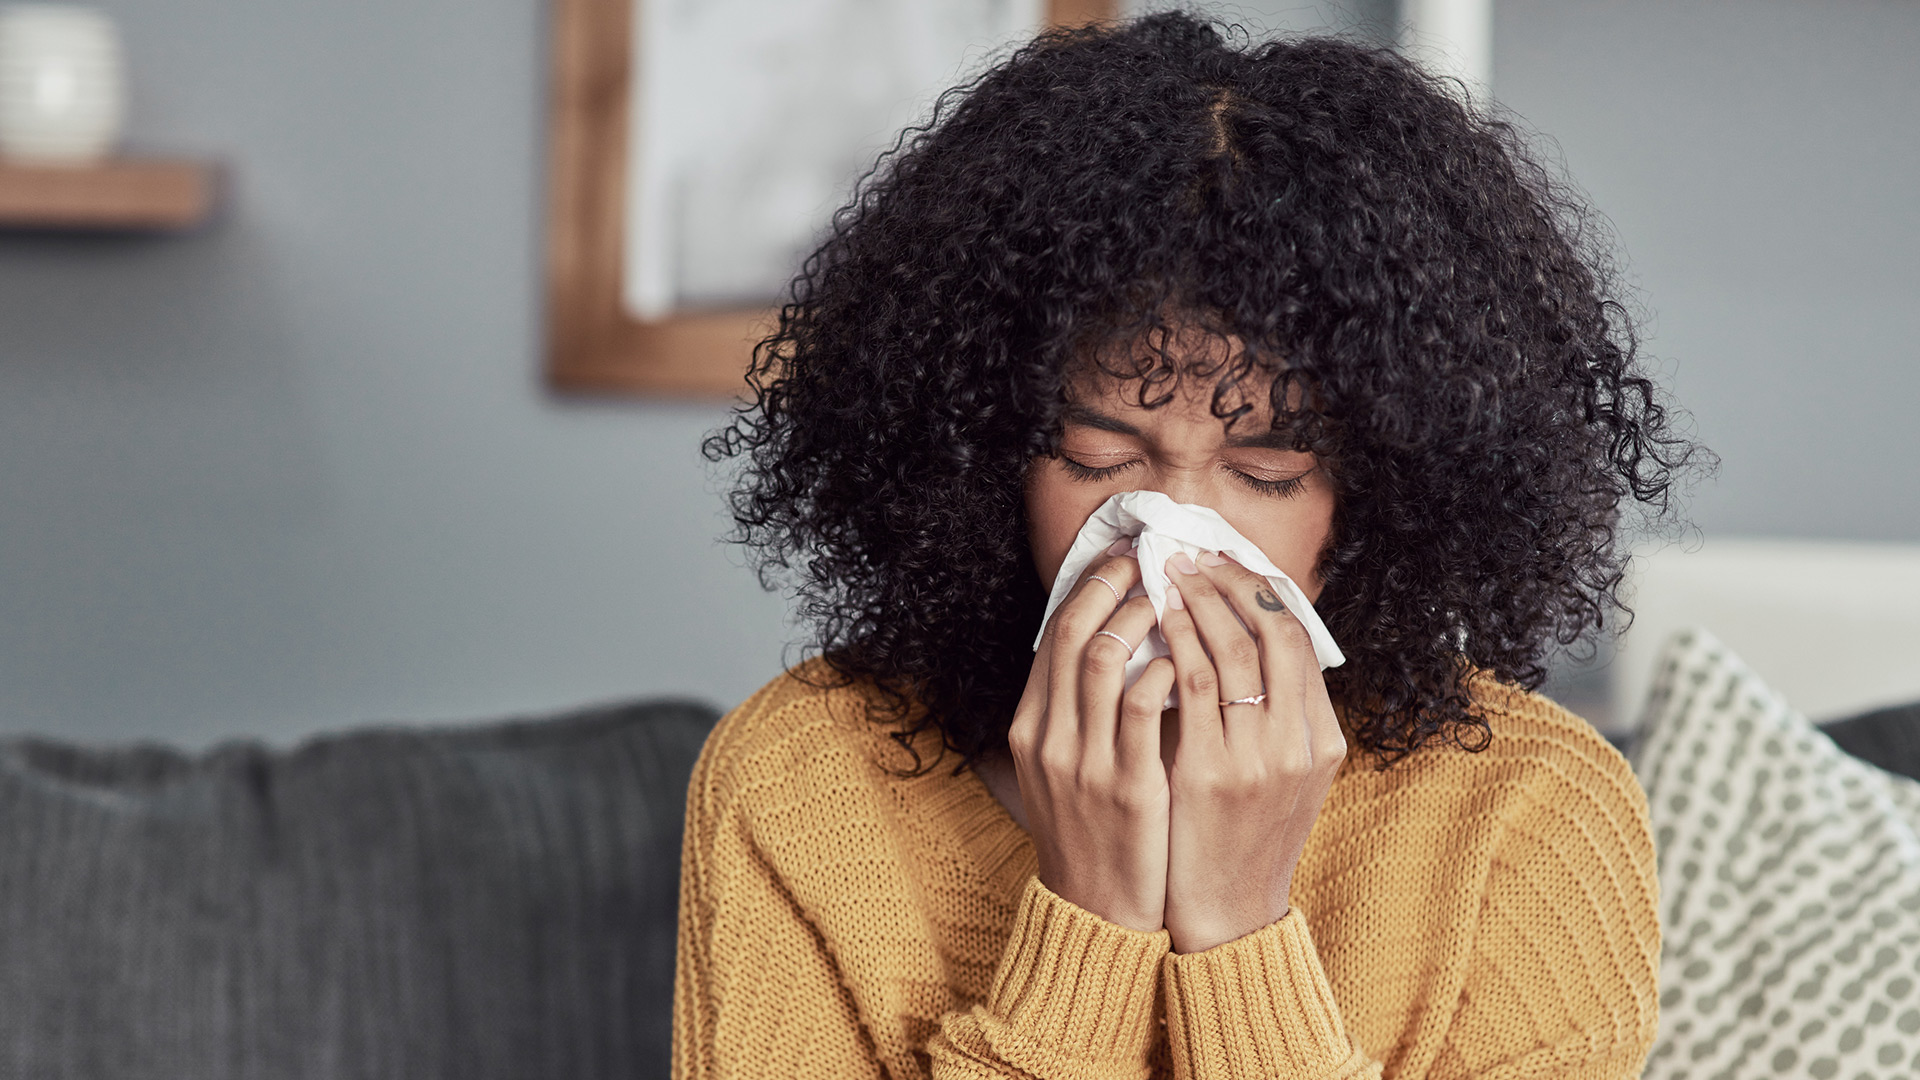 With another flu season rapidly approaching as healthcare facilities continue to manage the current surge from the Delta variant, Atrium Health infectious disease physicians like Dr. Anupama Neelakanta are anxious for the public to understand what to expect this flu season and how to stay healthy as it approaches.